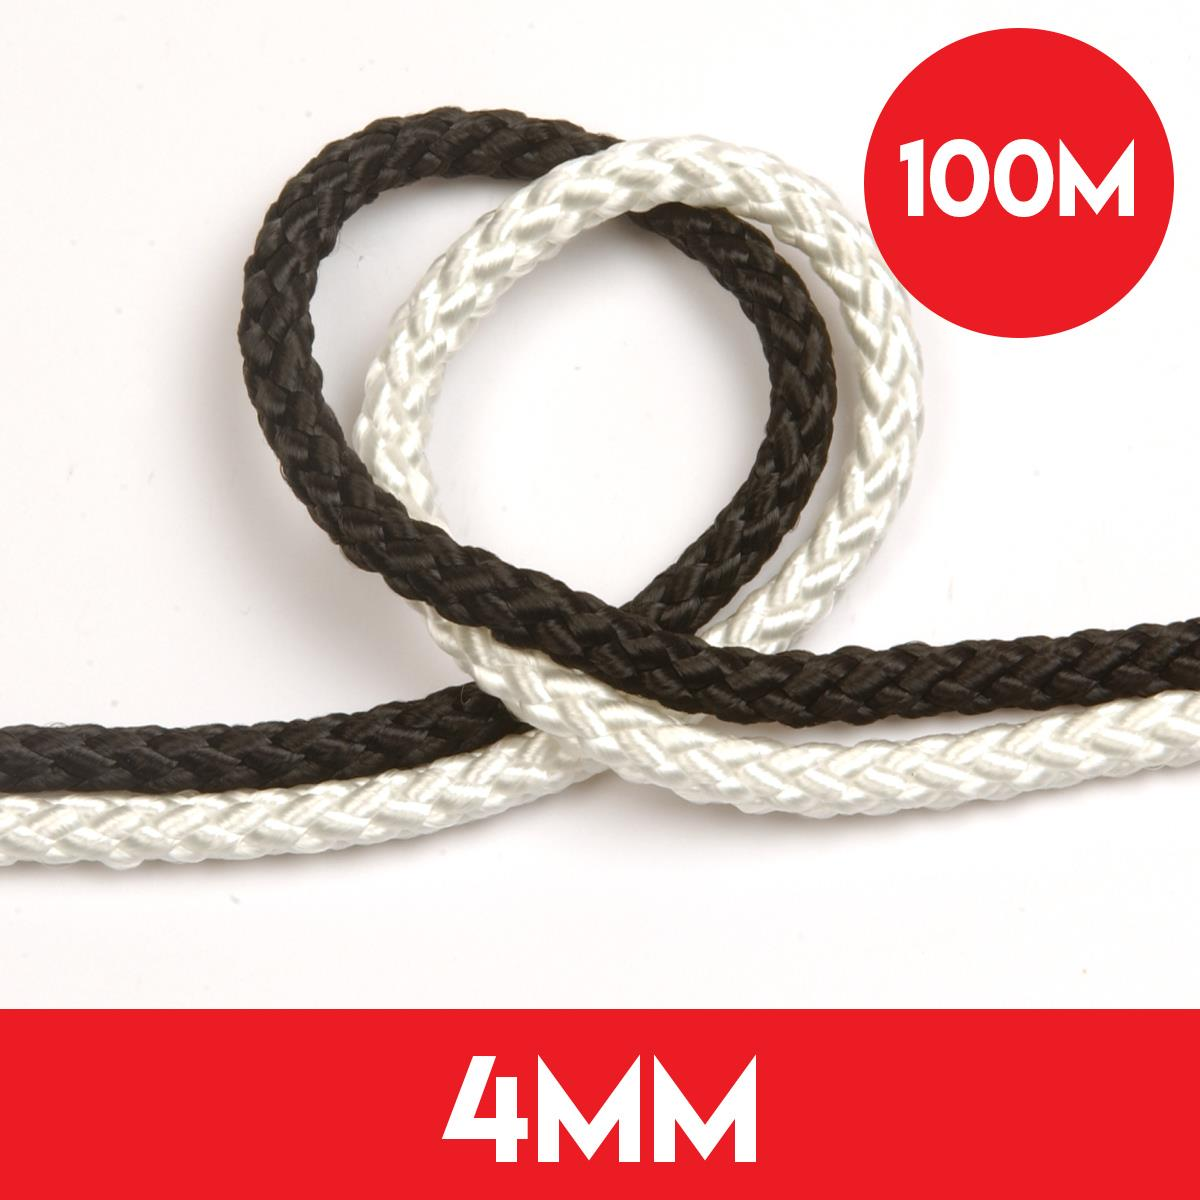 100m of 4mm 8 Plait Standard Polyester Rope